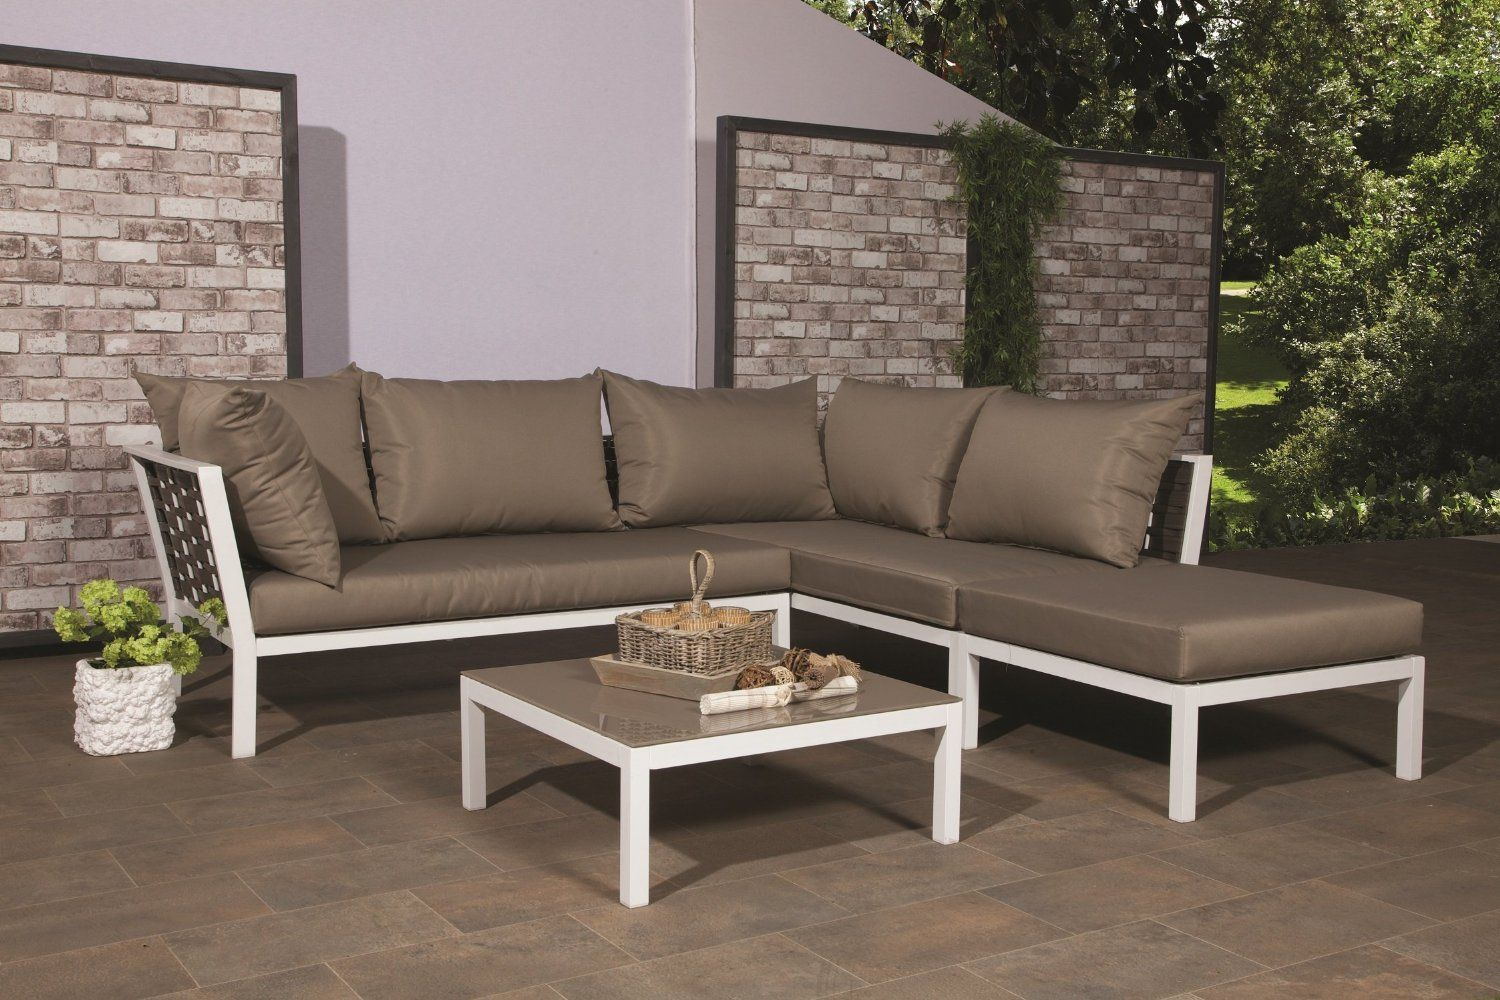 Amazon De Luxus Poly Rattan Lounge Sydney Weiss Inkl